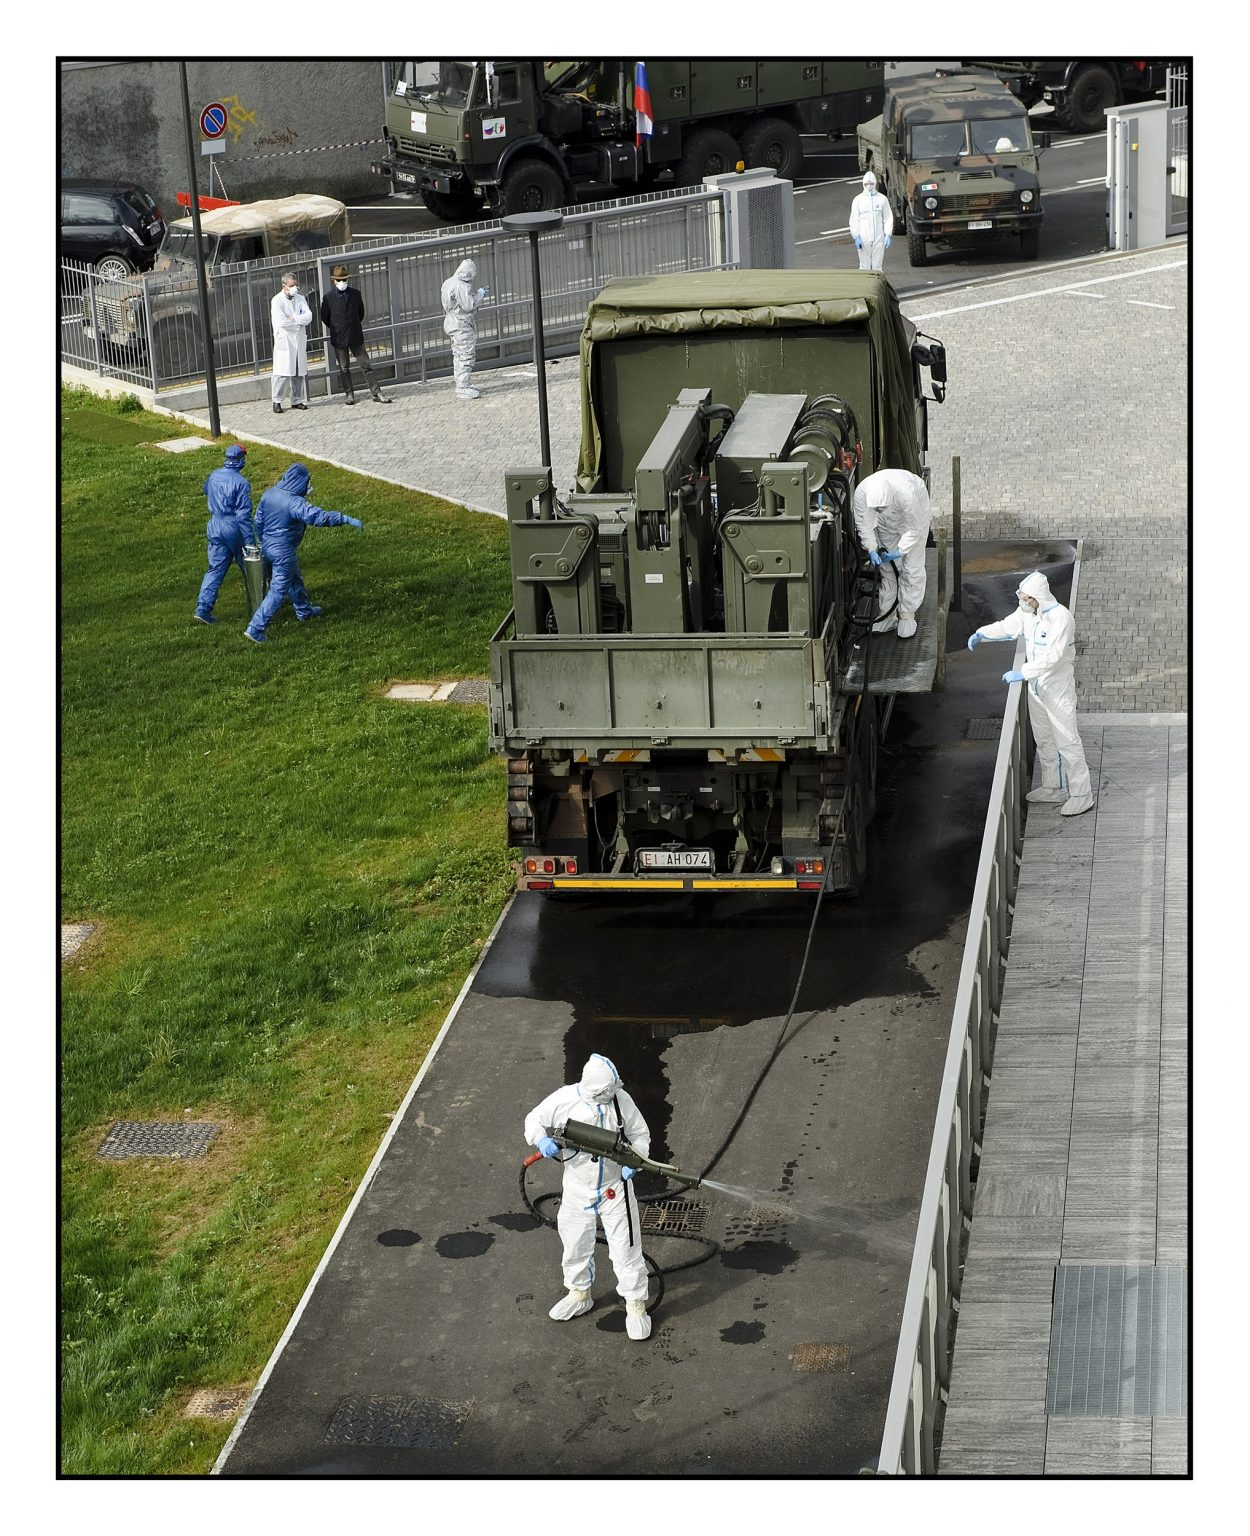 """Sanitation operations in the courtyard of the structure by the soldiers of the Special Chemical, Bacteriological, Radioactive and Nuclear Defense Forces of the Russian army in collaboration with the """"Cremona"""" Biological and Chemical Nuclear Defense Regiment (CBRN) of the Italian army.  Ponte San Pietro, Fondazione Casa di Riposo Onlus, April 1st 2020"""